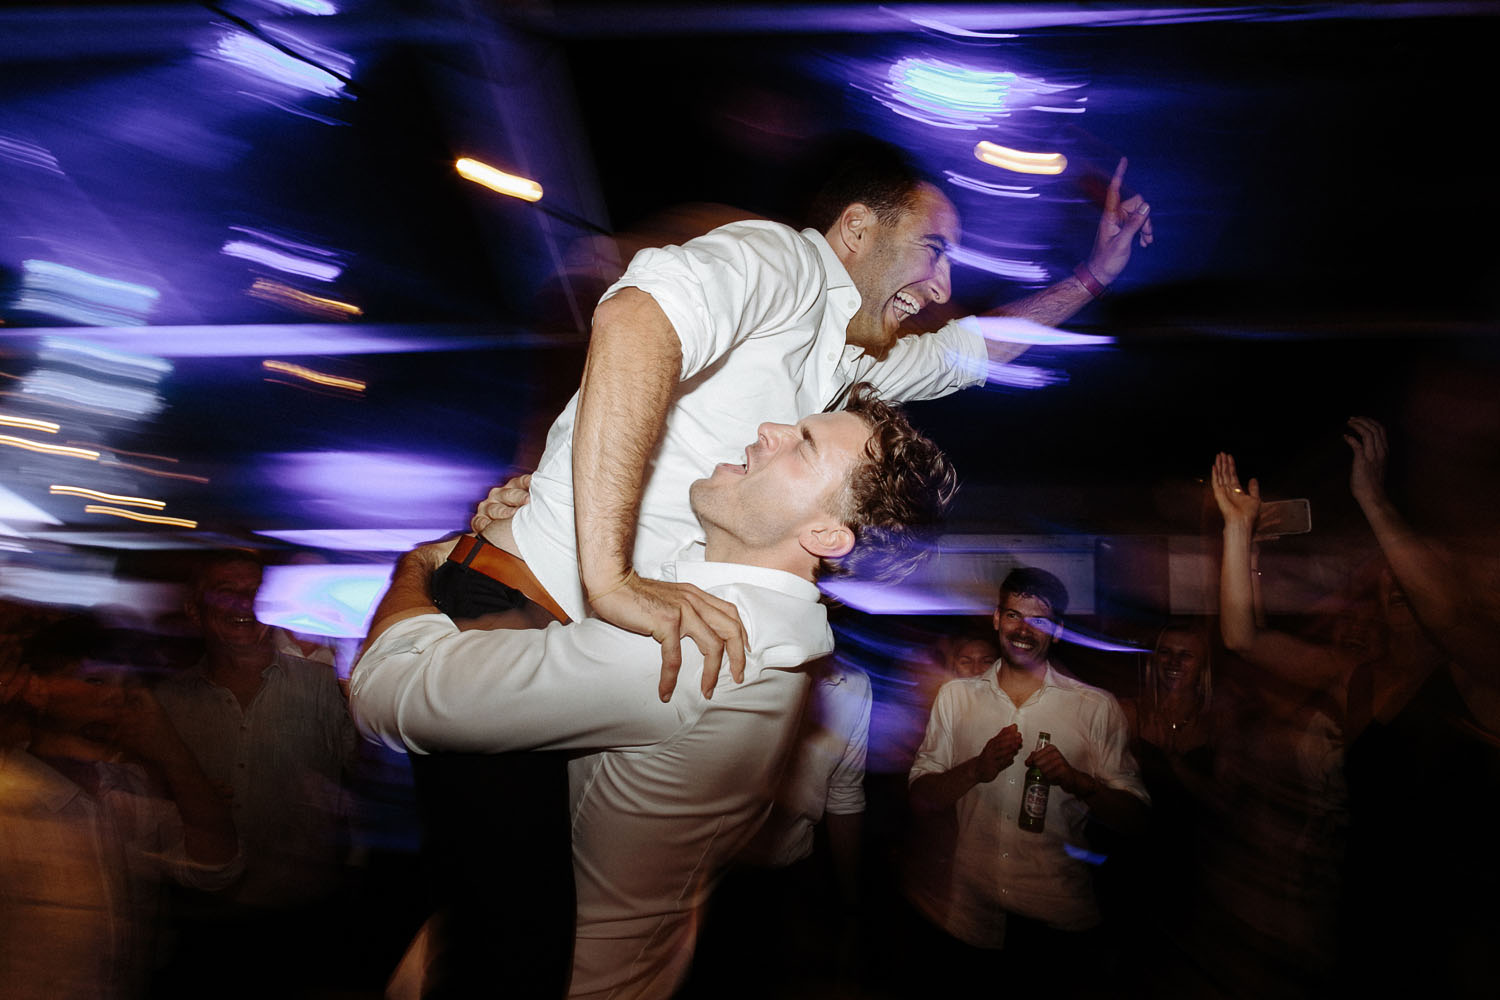 groomsman lifts groom up on dancefloor